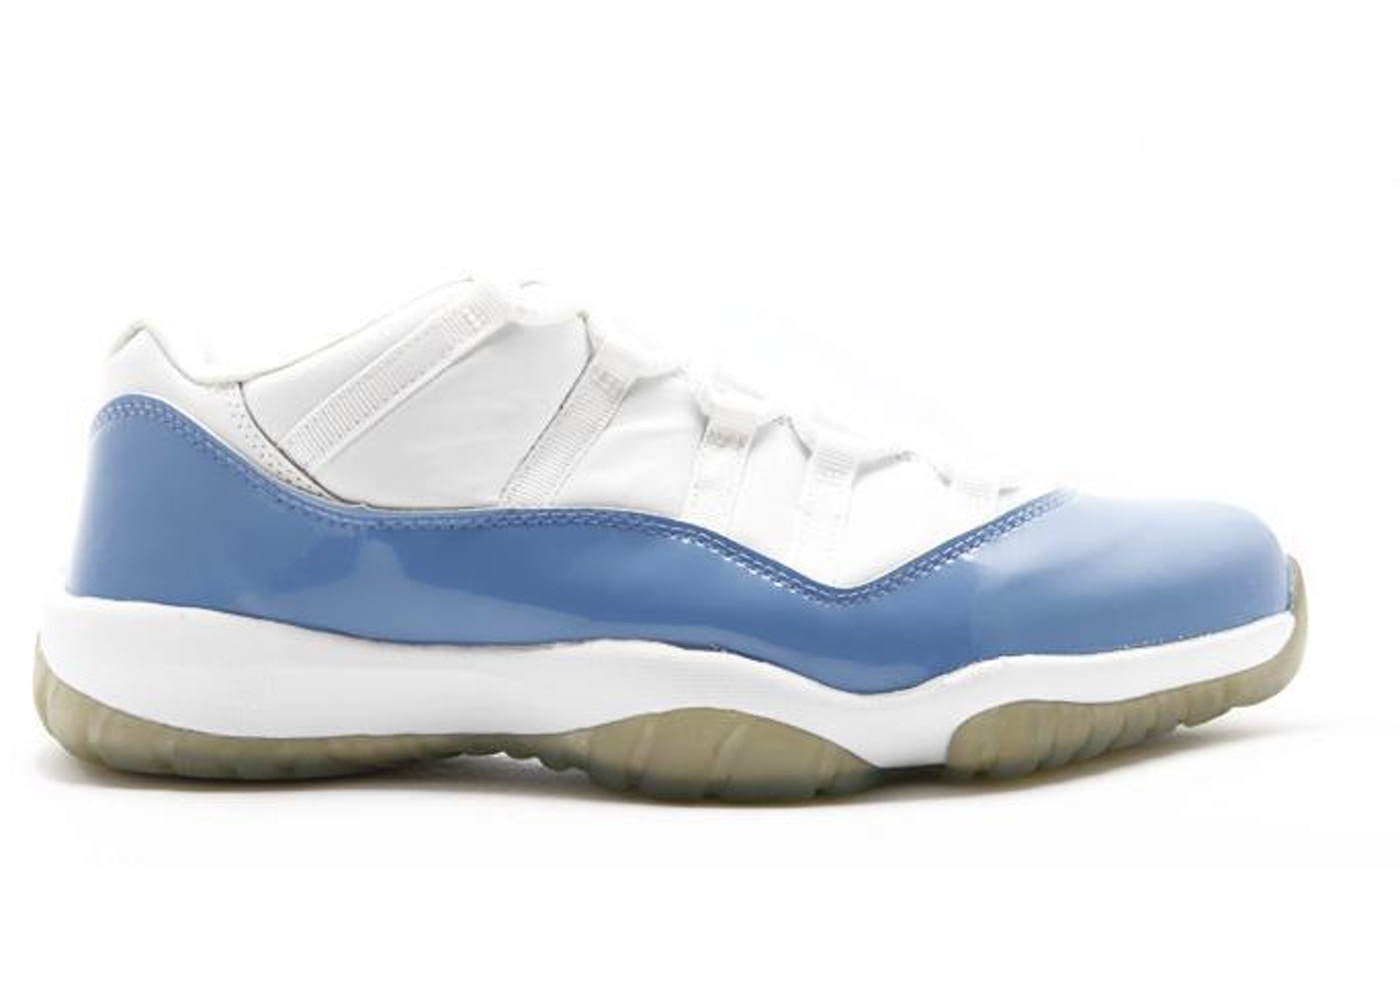 new style 29eac 2dc38 Jordan 11 Retro Low Columbia Blue (2001) - 136053-141